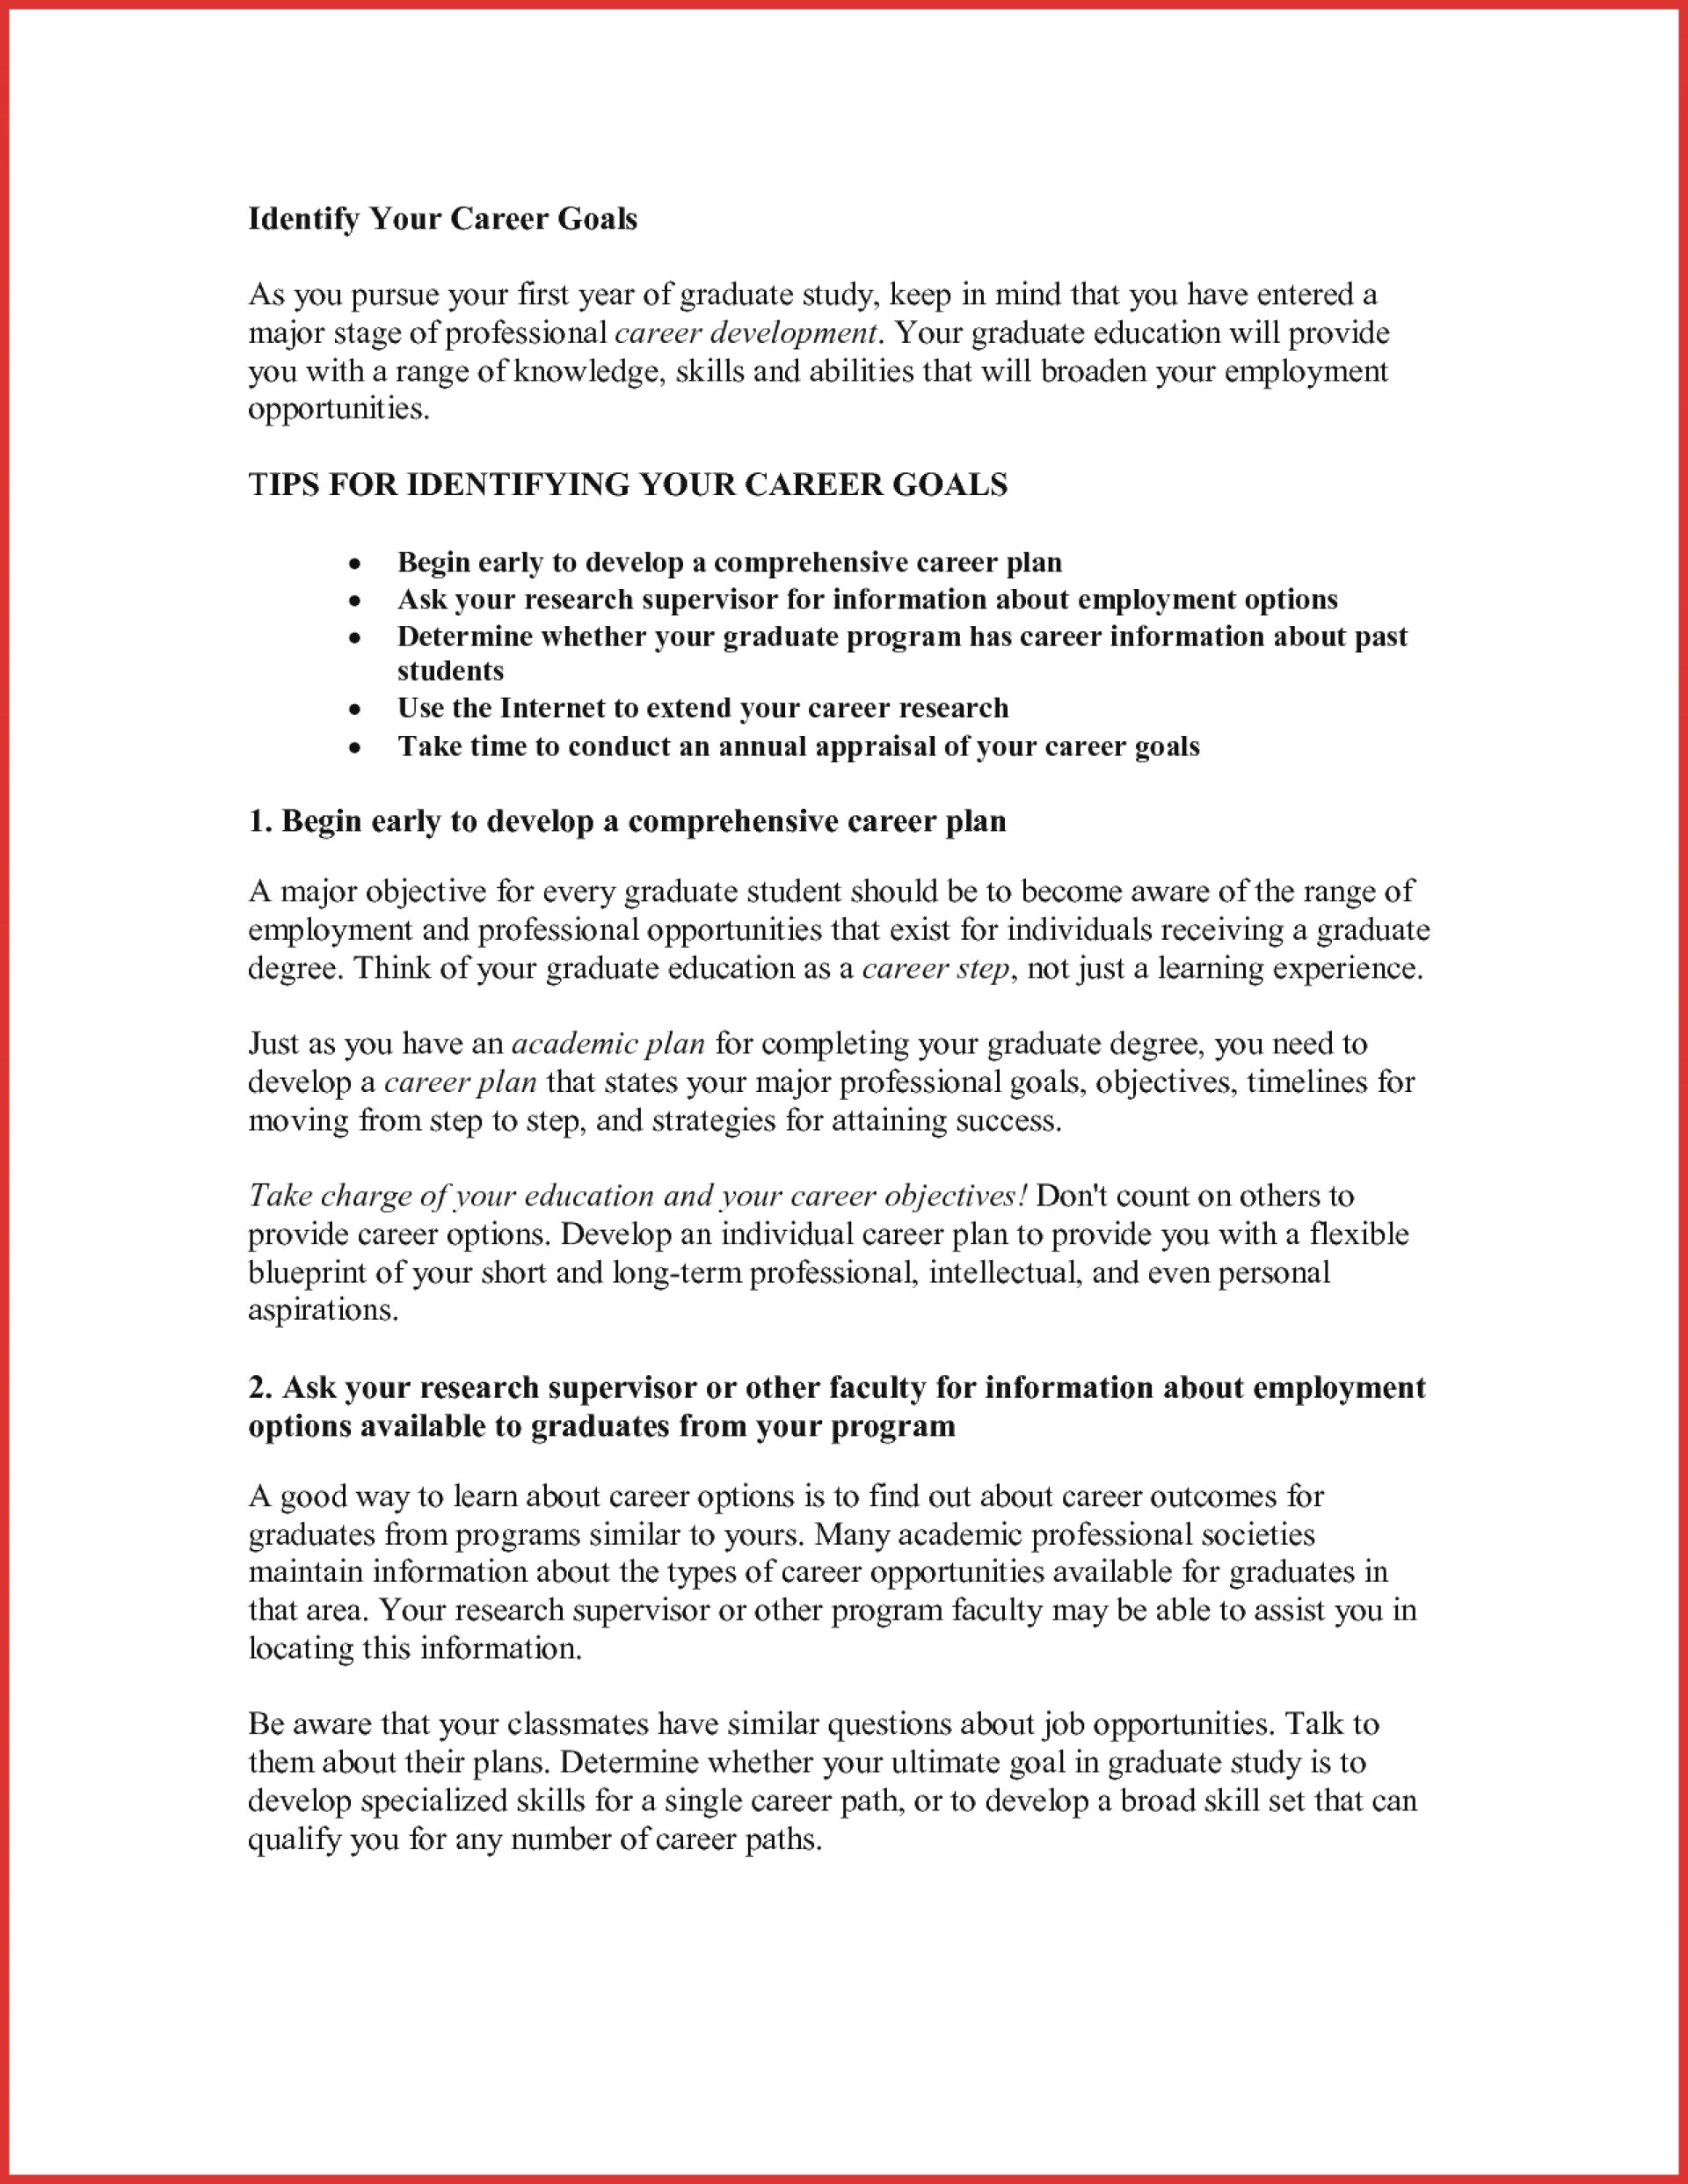 003 What Are Your Career Goals Essay Example Goal Examples Unique Sample On Best Medical School Interests And Future 1920